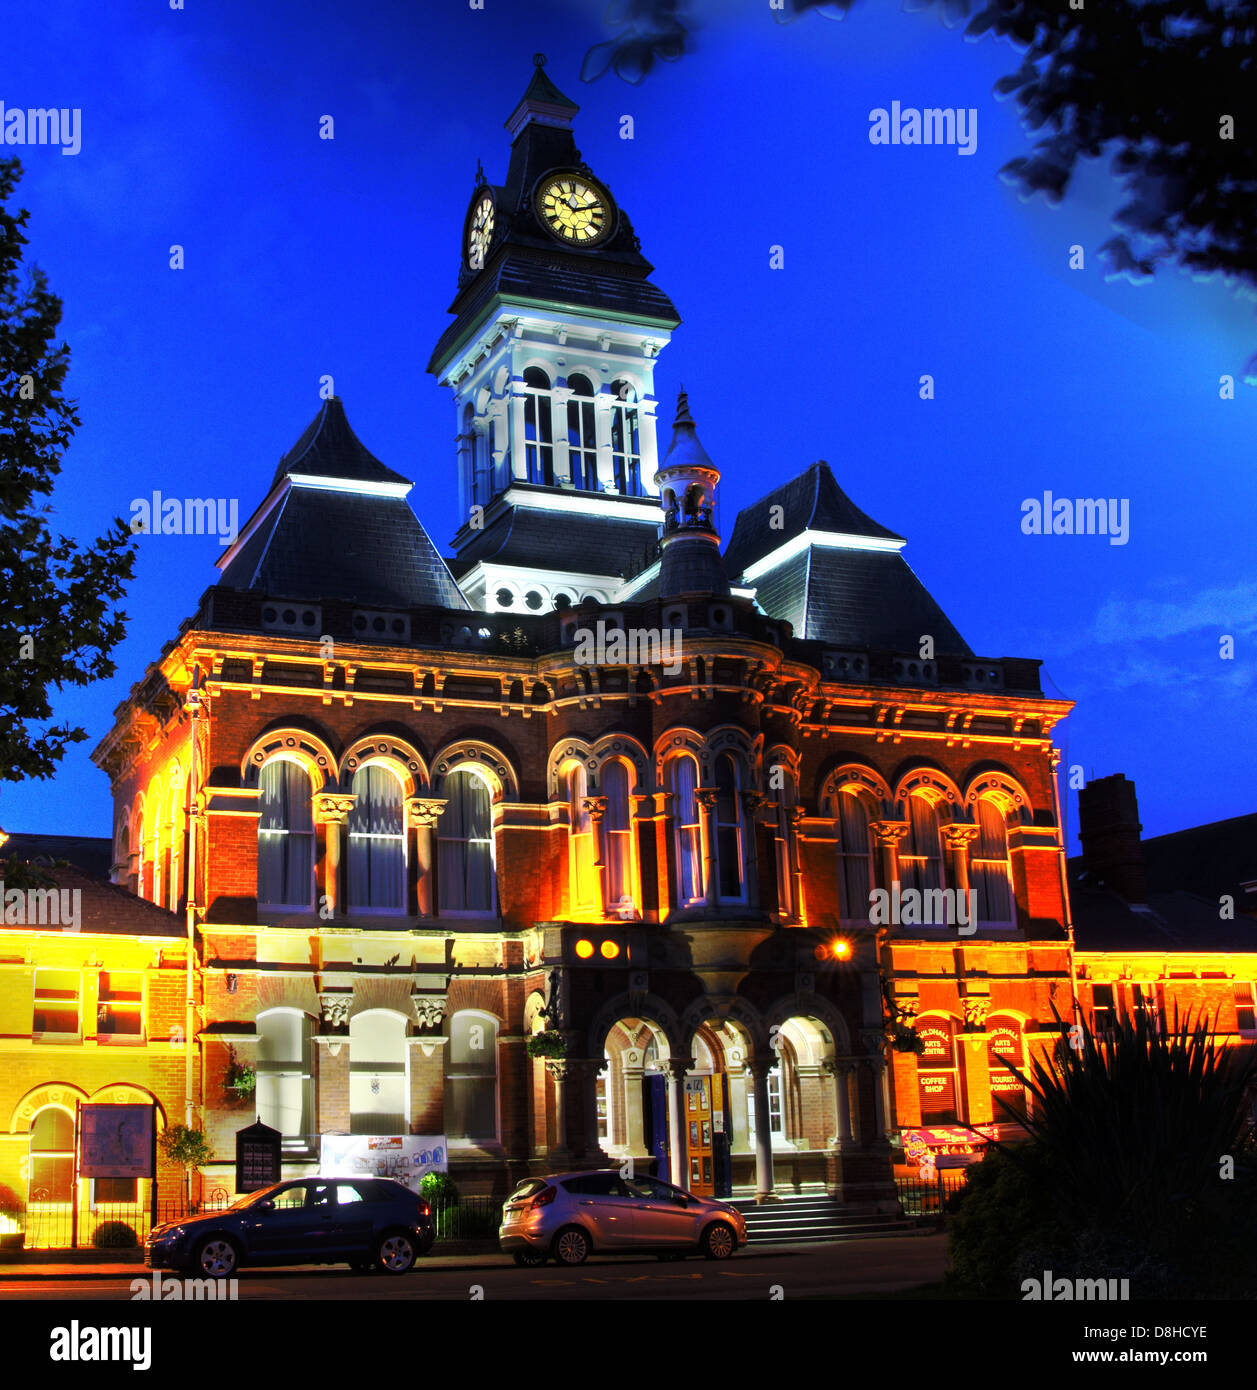 Grantham historic Guildhall , jail and four-sided clock at dusk, St Peter's Hill, Grantham NG31 6PZ - Stock Image